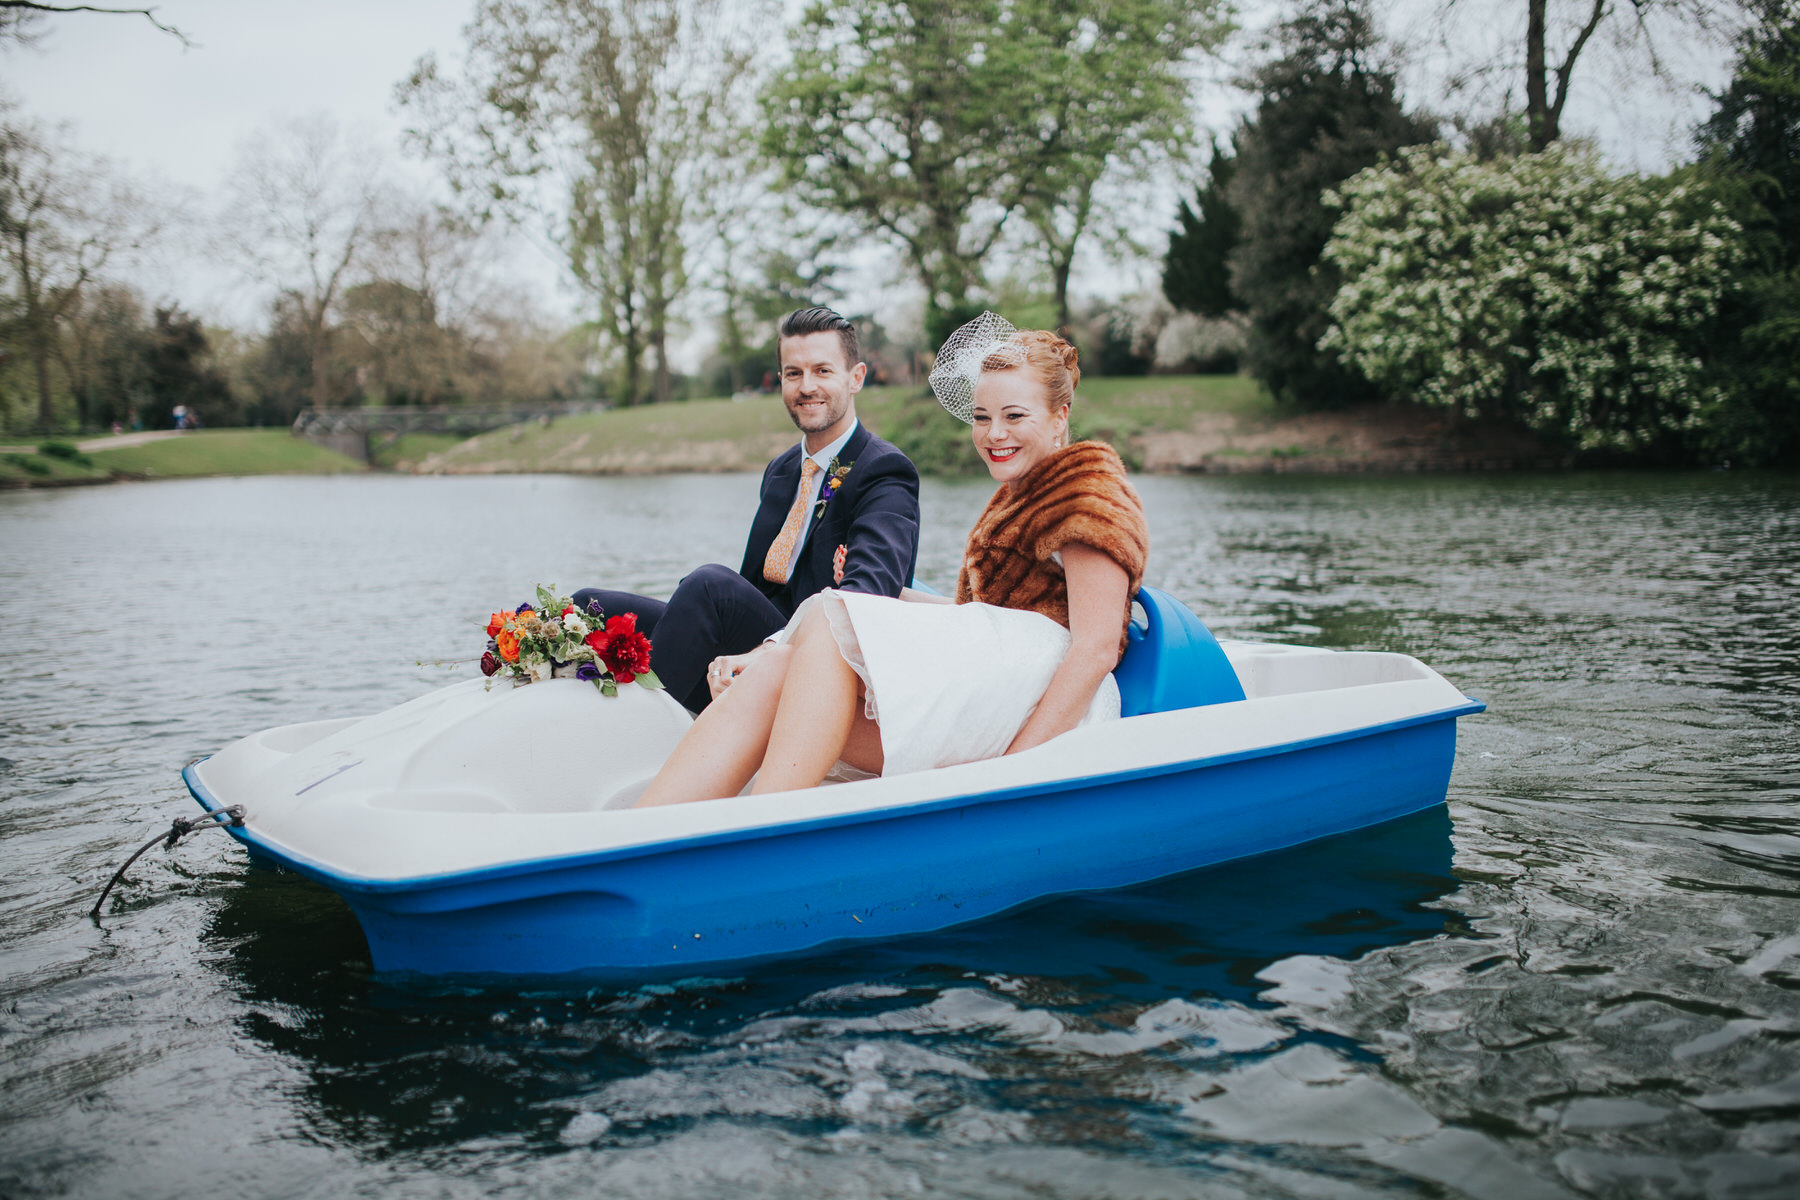 194-Victoria-park-untraditional-wedding-portraits-pedalo.jpg